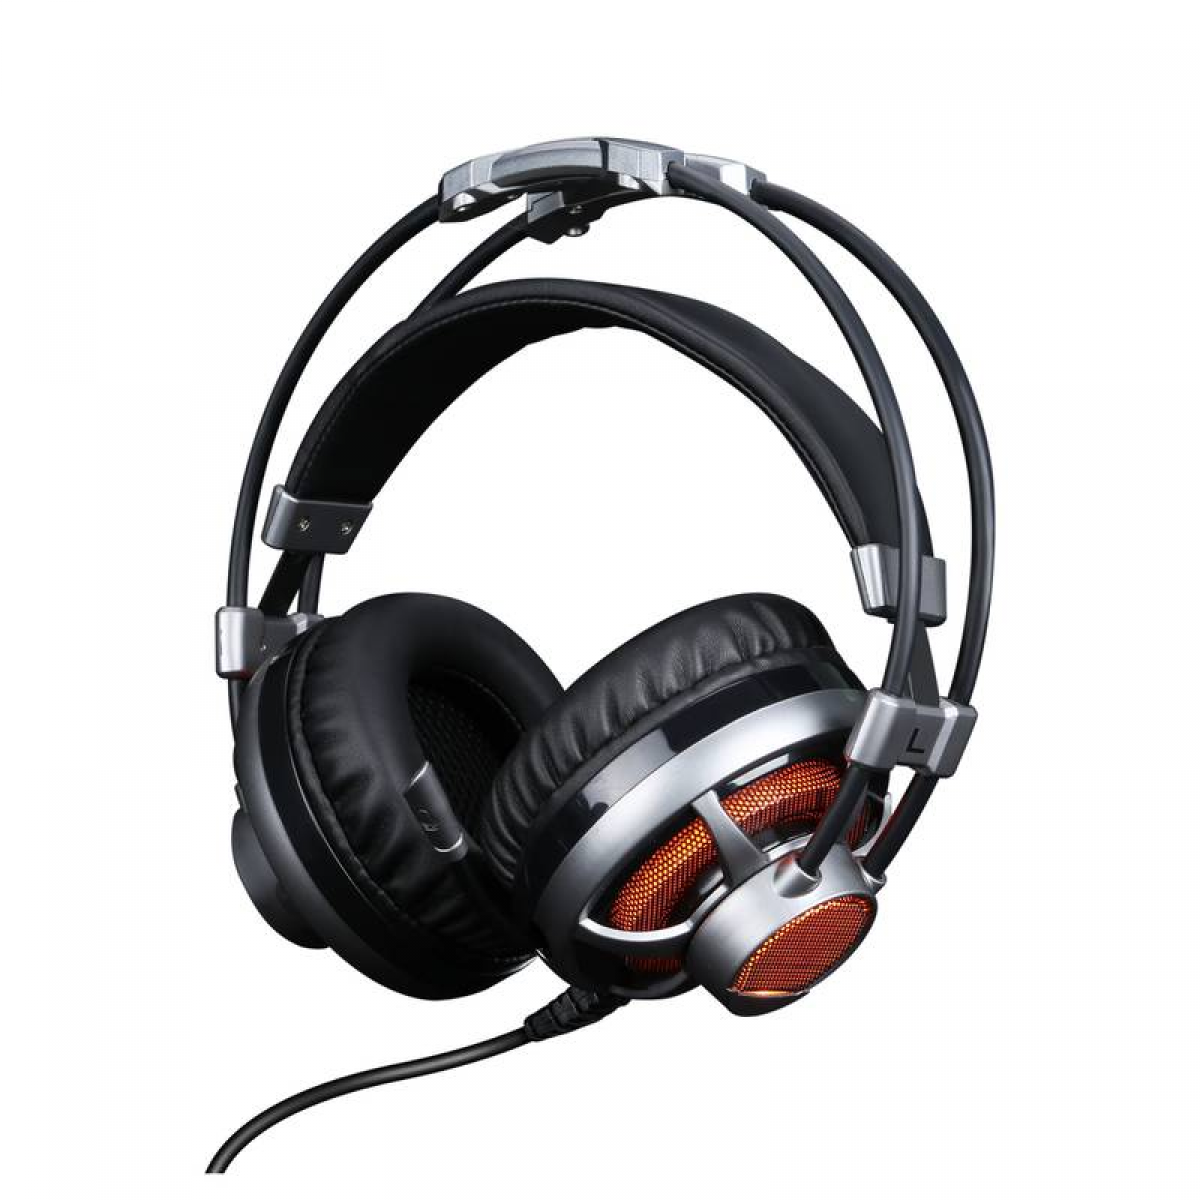 Headset Gamer ELG, 7.1 Surround Channel C/ Microfone - PC, PS4, HGSS71